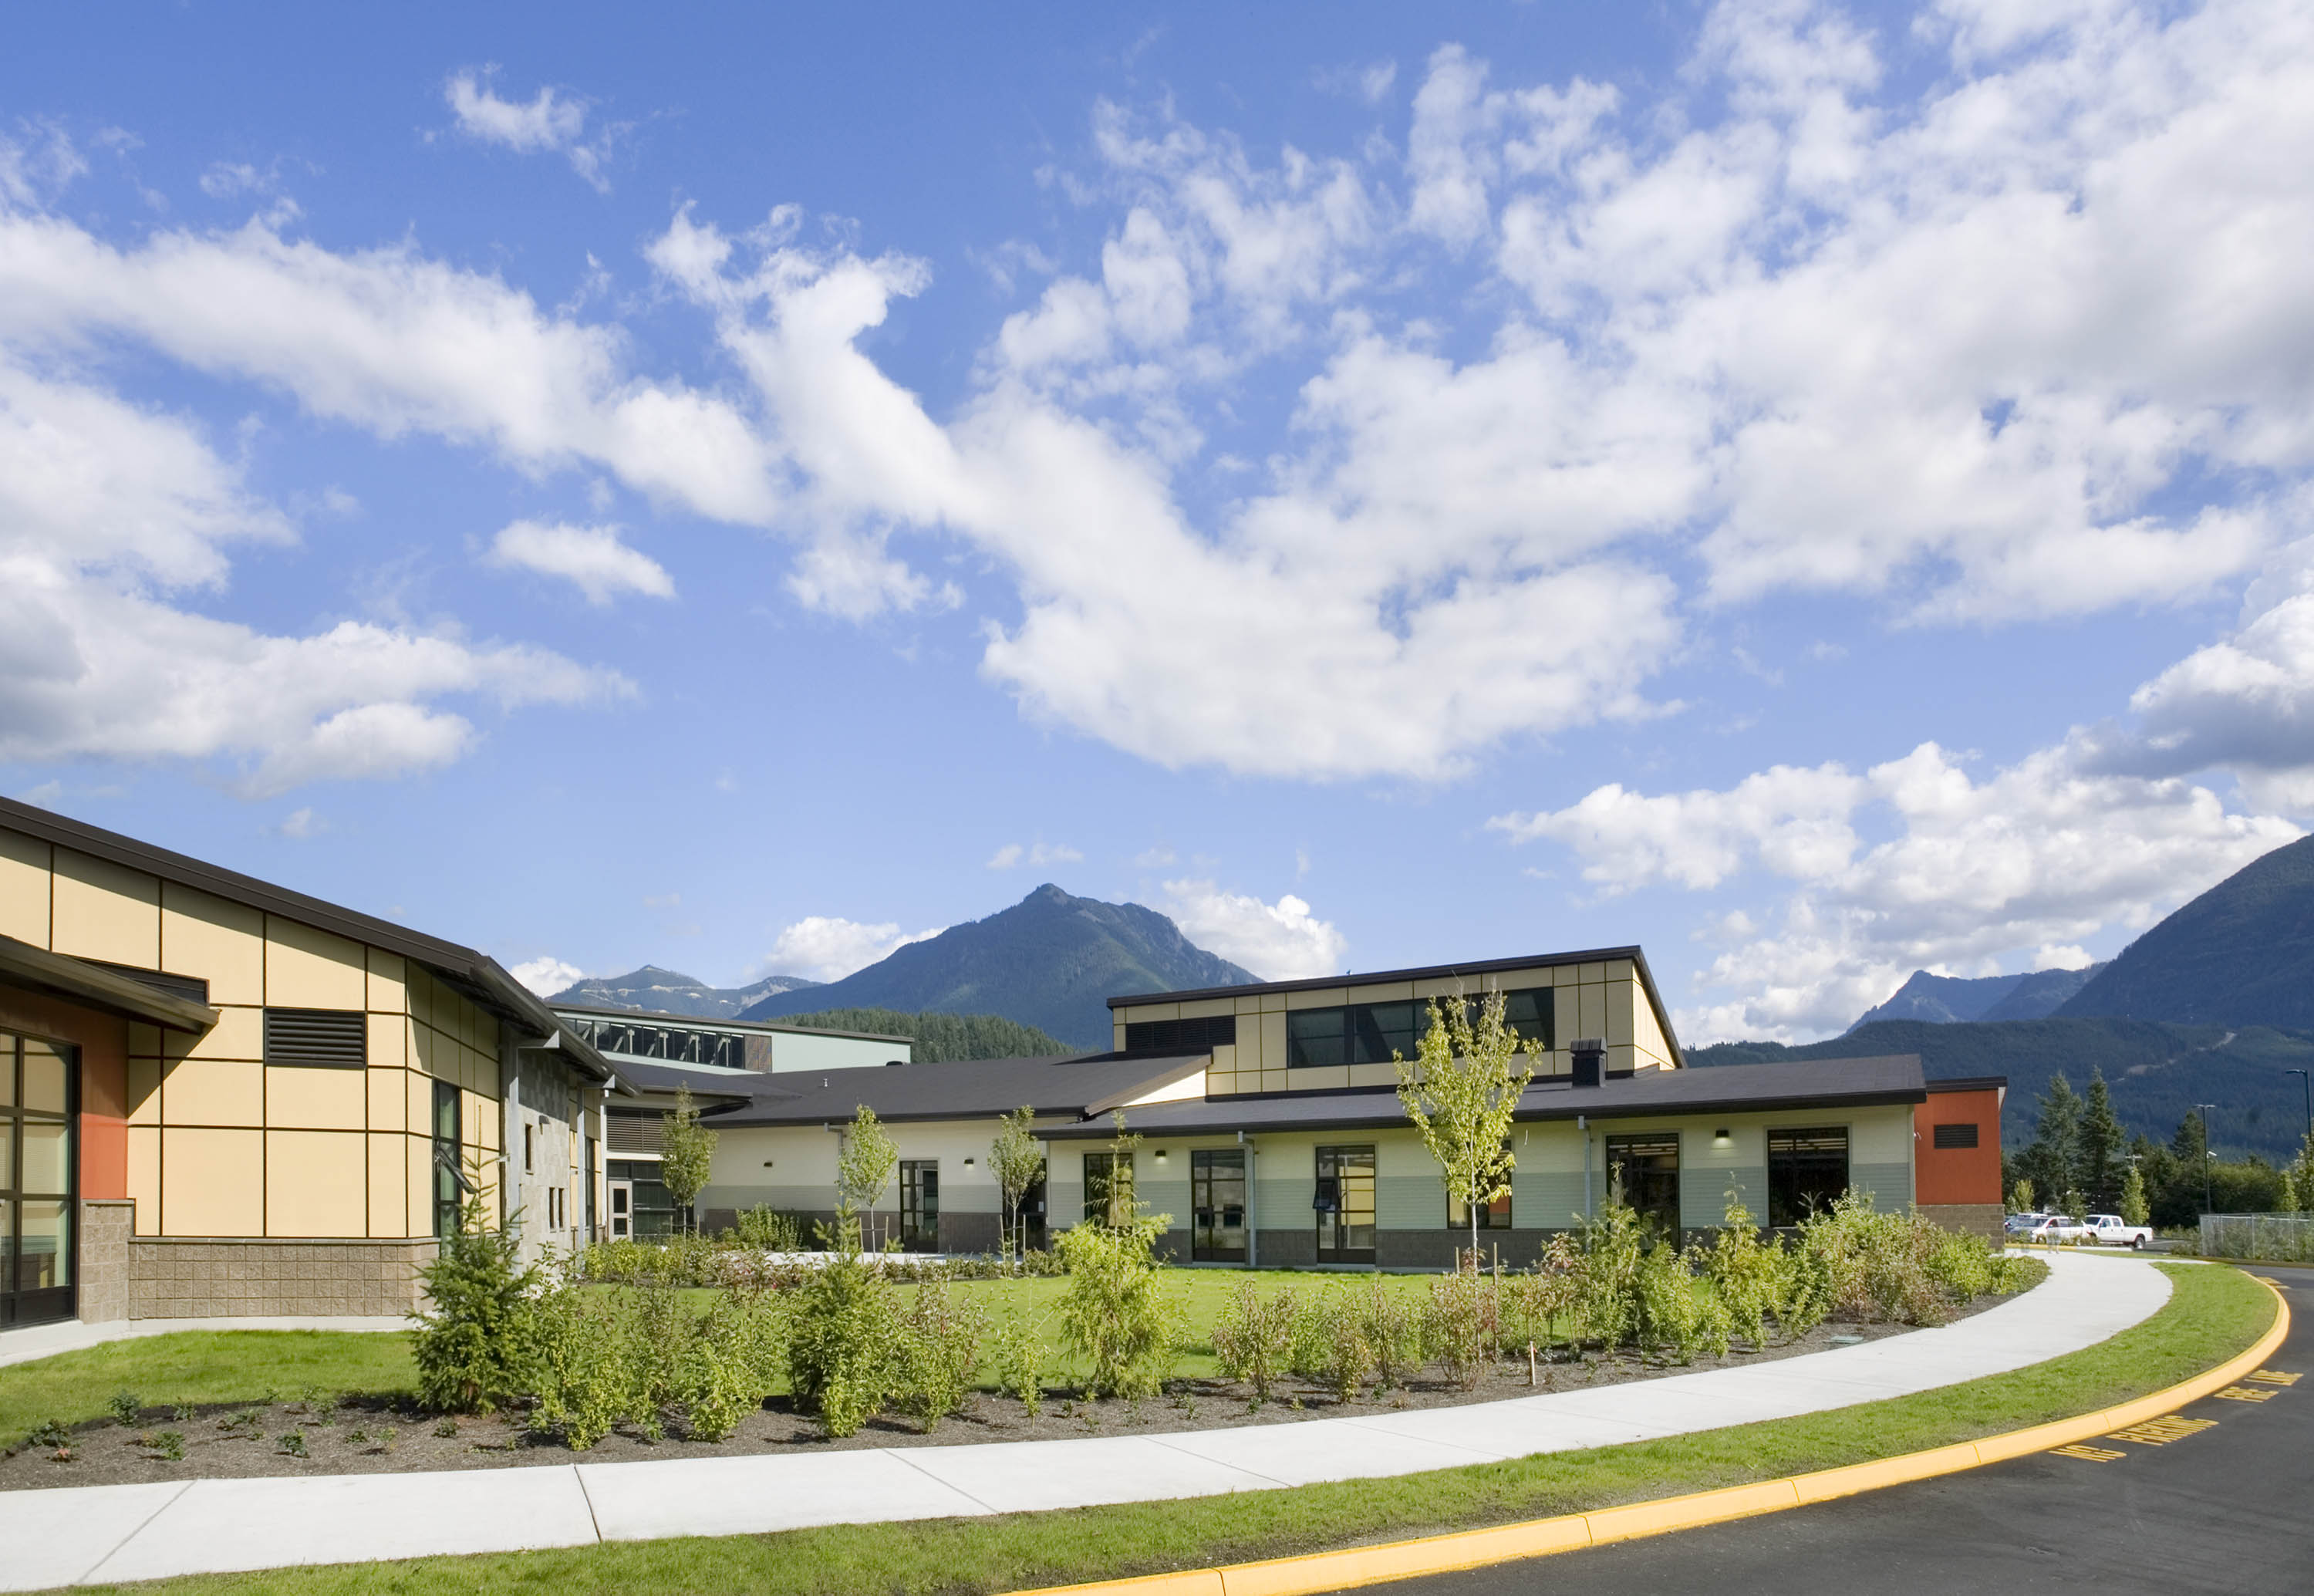 Angled photo of the school with mountains in the background.